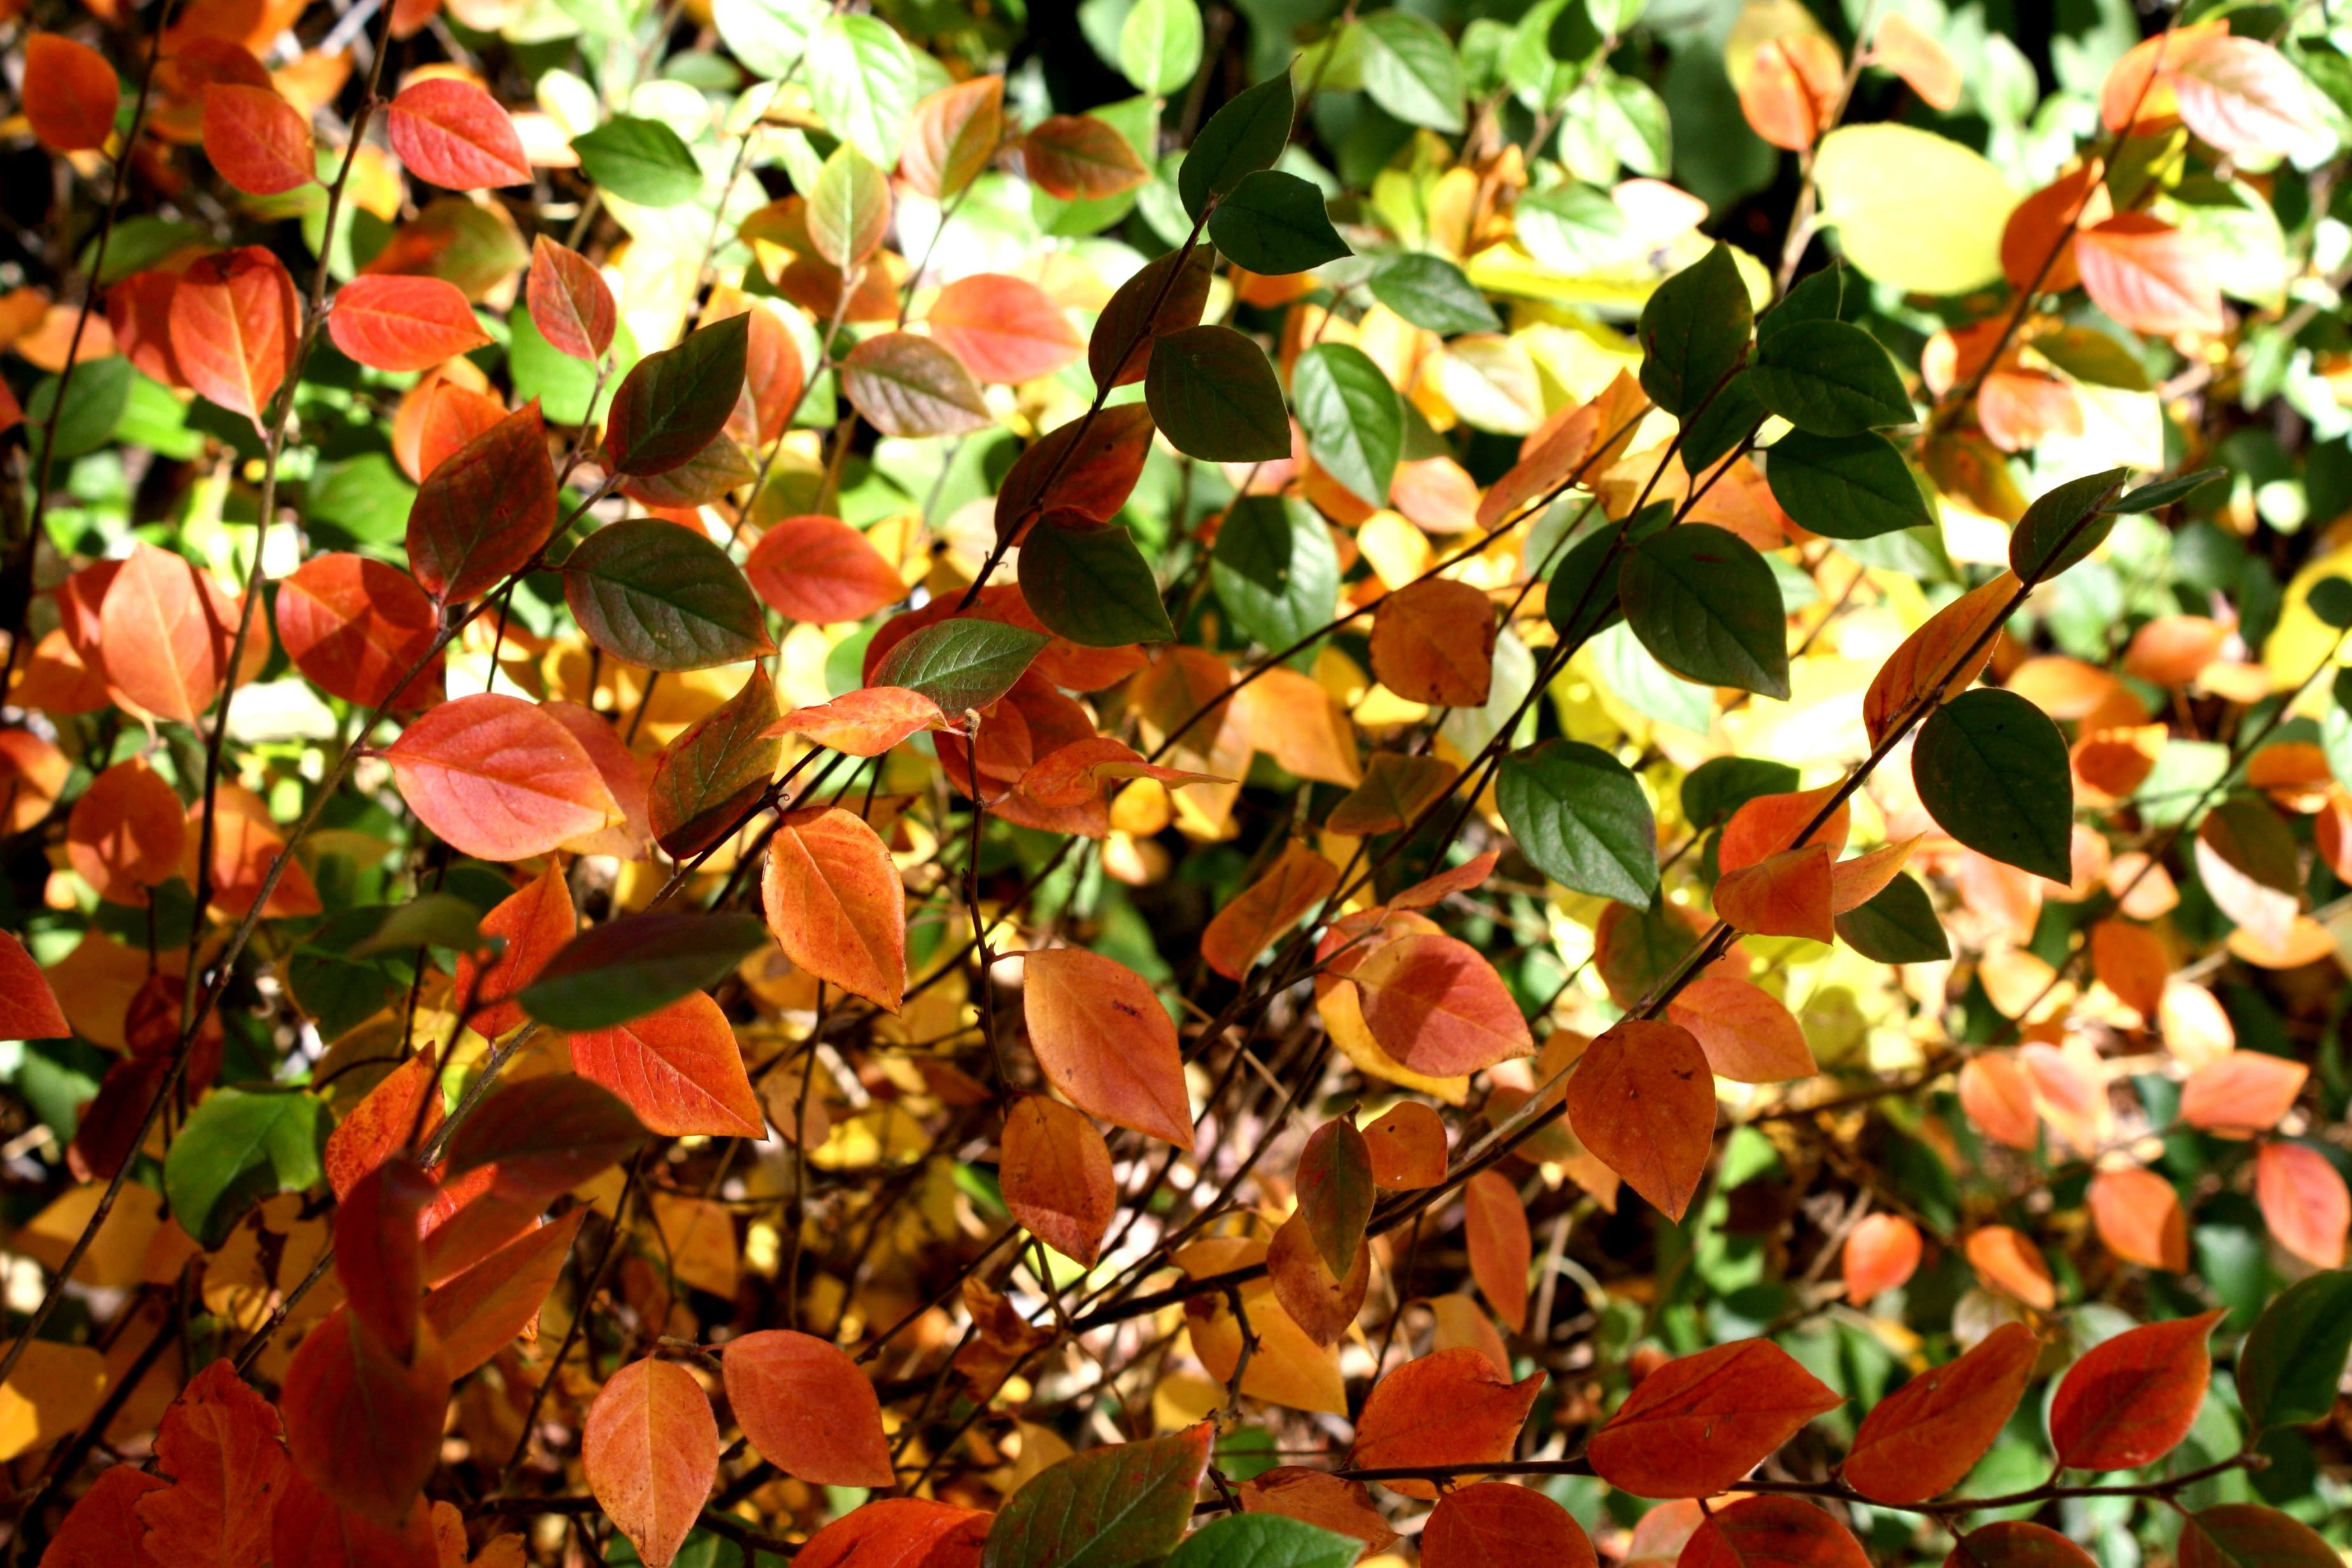 Free picture: colorful leaves, autumn, leaves, texture